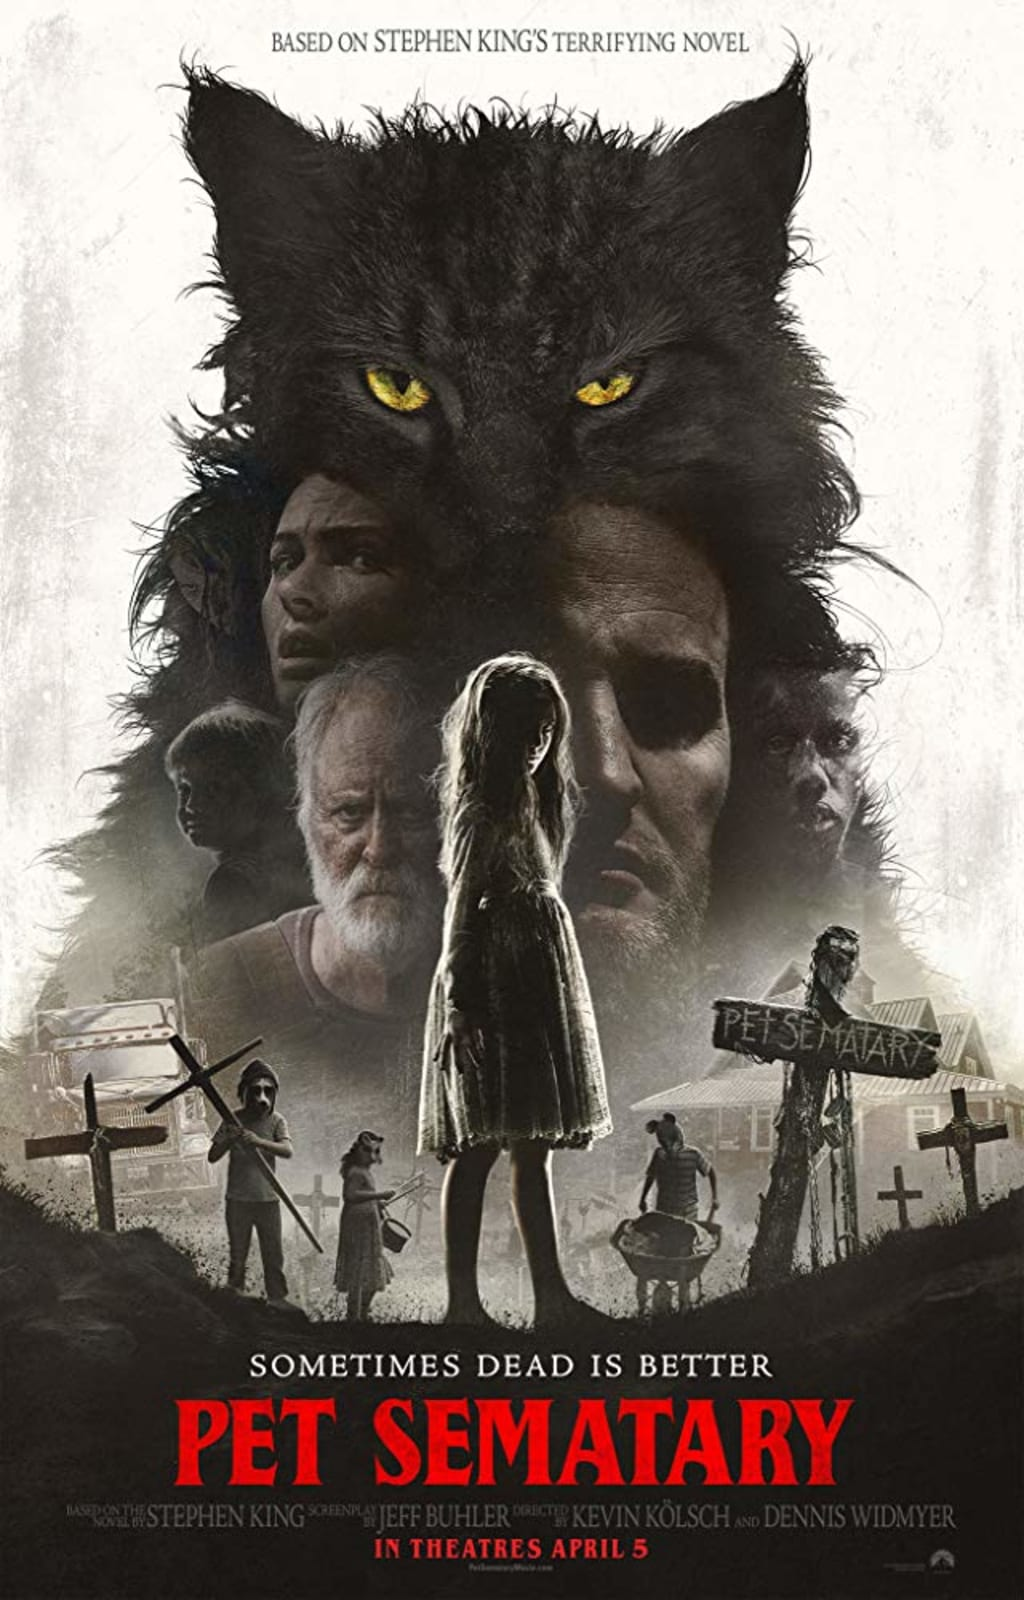 Reed Alexander's Horror Review of 'Pet Sematary' (2019)